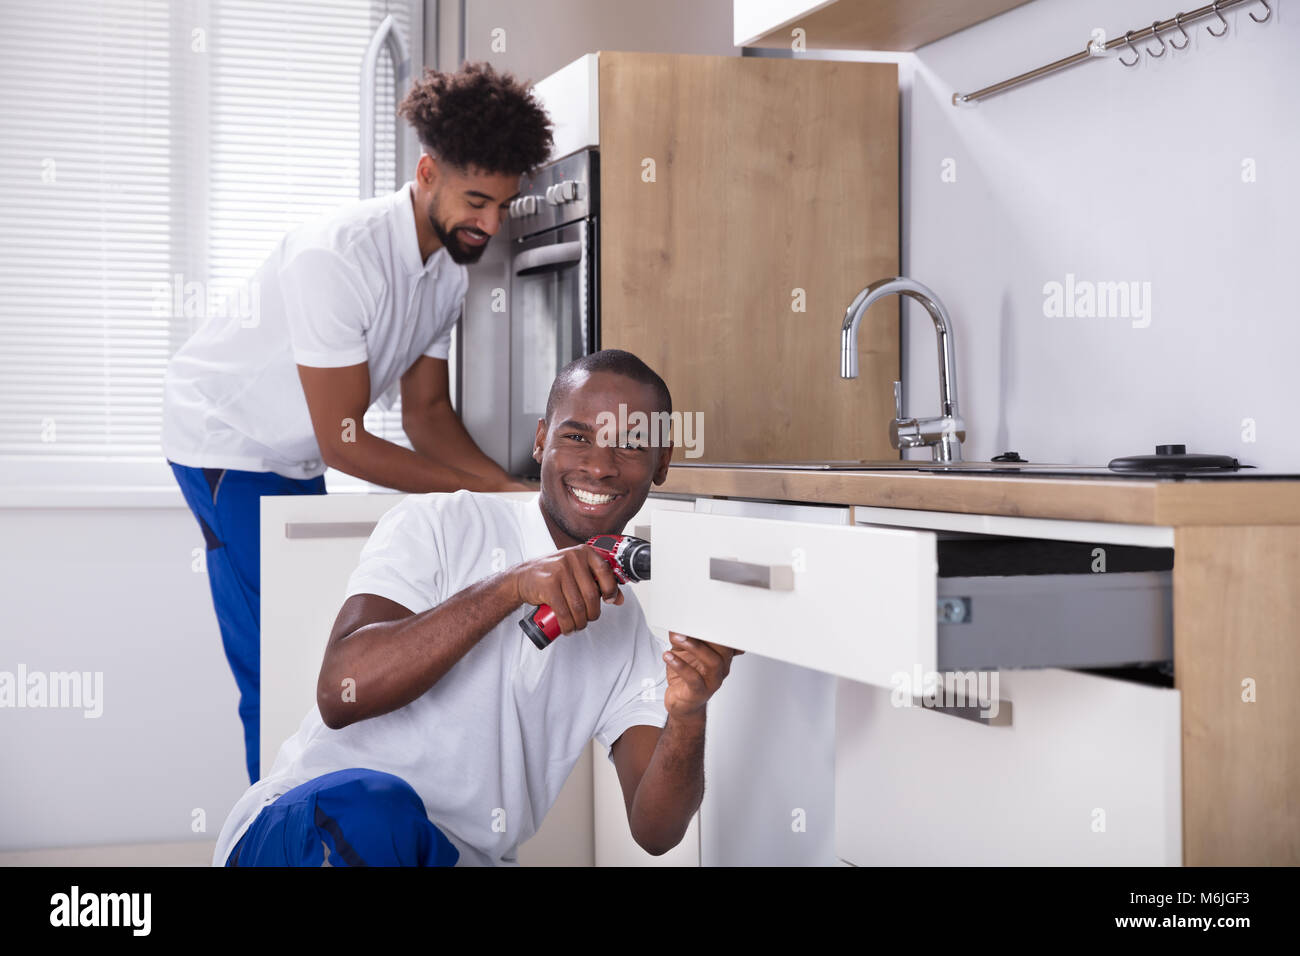 Rear View Of Two Happy Young Handy Men Fixing The Wooden Cabinet In The Kitchen Stock Photo